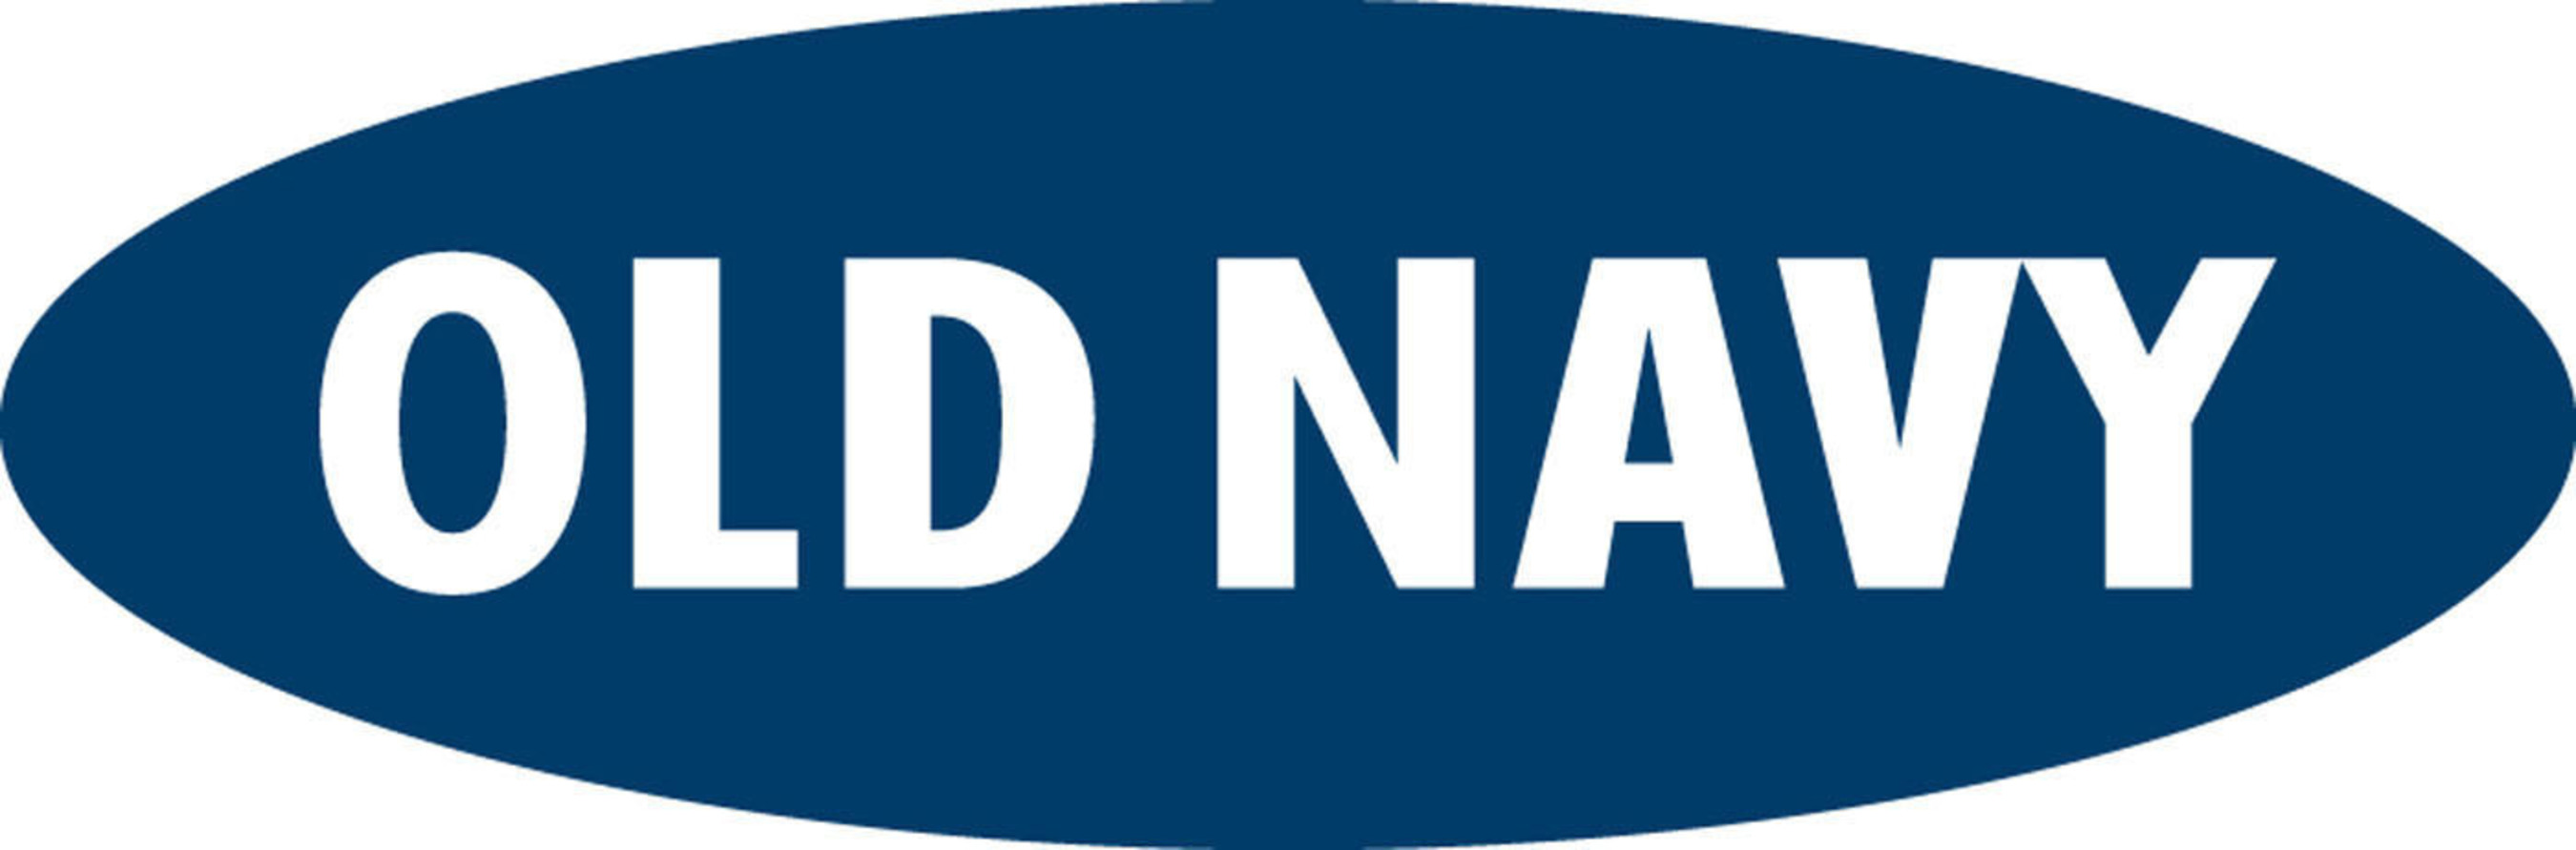 Old Navy.